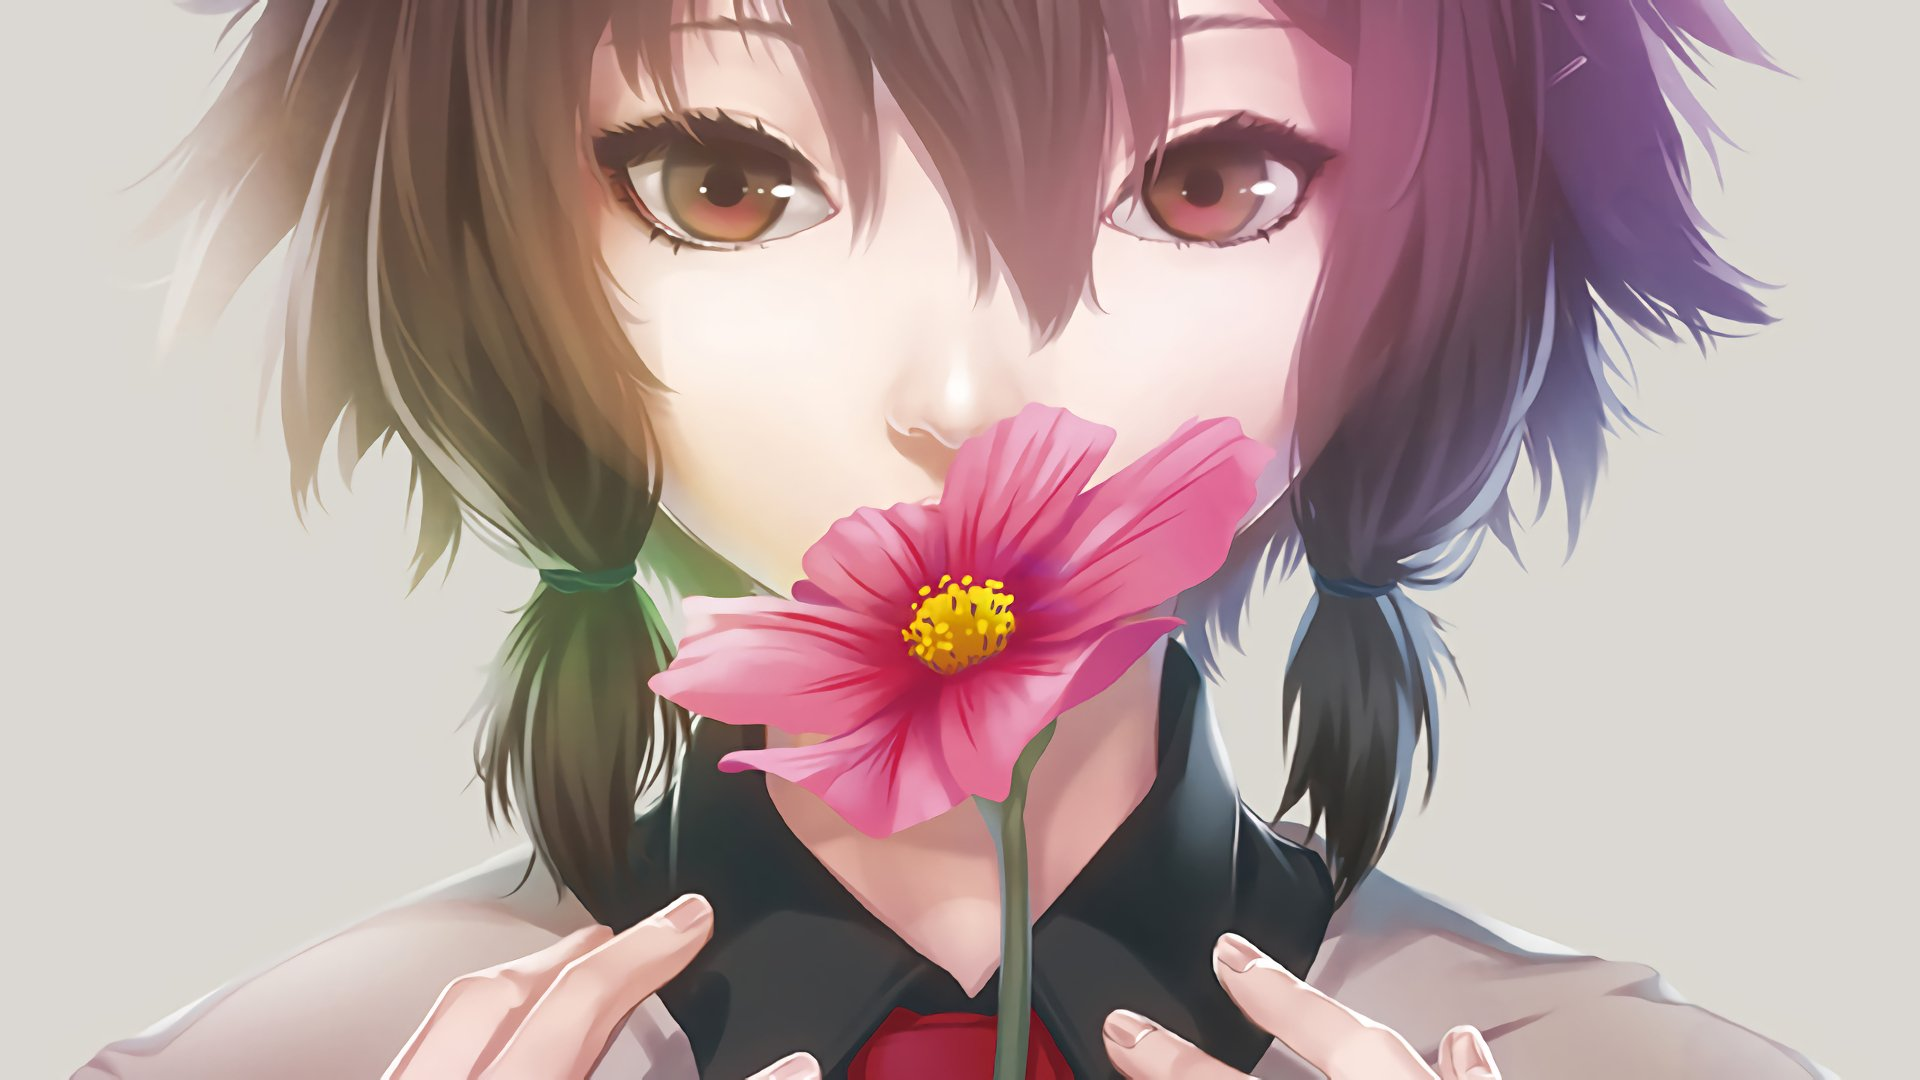 Anime - Original  Girl Flower Anime Brown Hair Brown Eyes Wallpaper